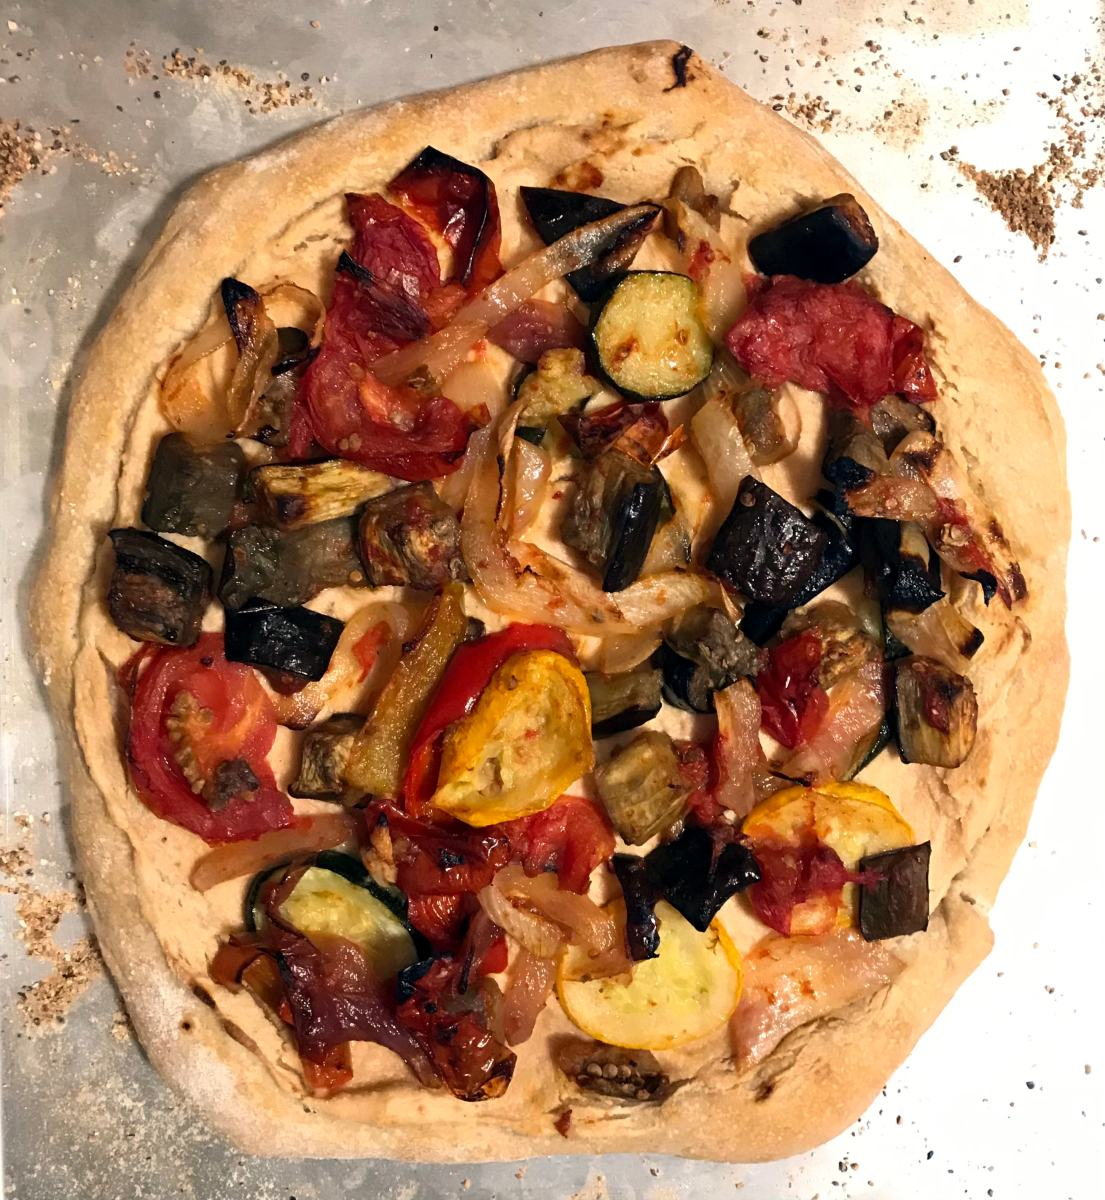 sourdough pizza topped with cashew cheese and leftover ratatouille